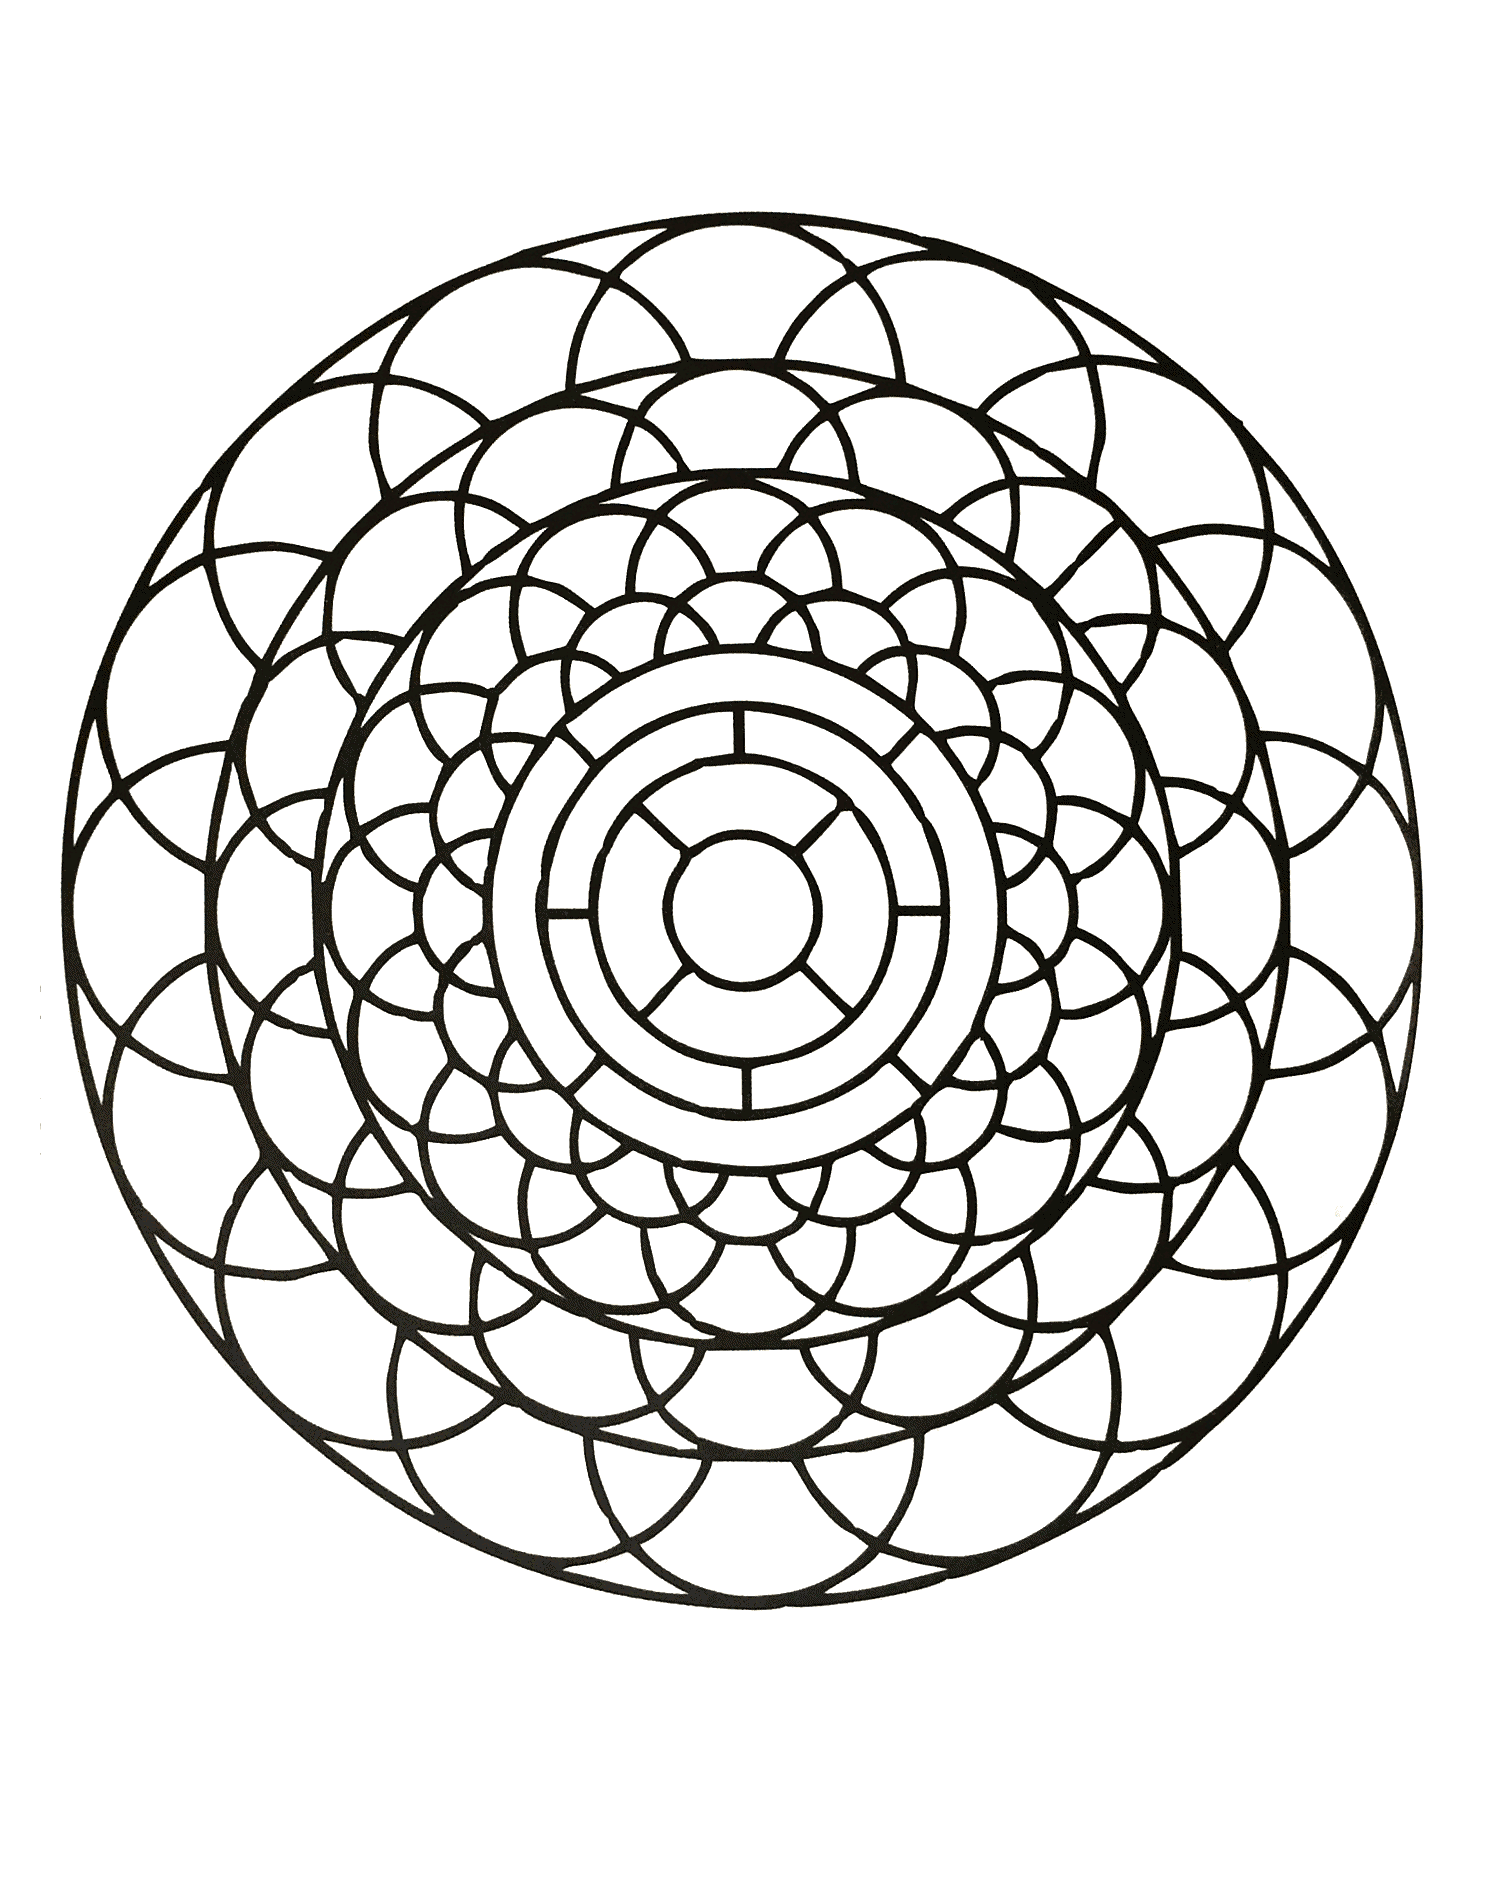 Unique Zen & Anti-stress Mandala. Designing and coloring mandalas give you a feeling of calmness.